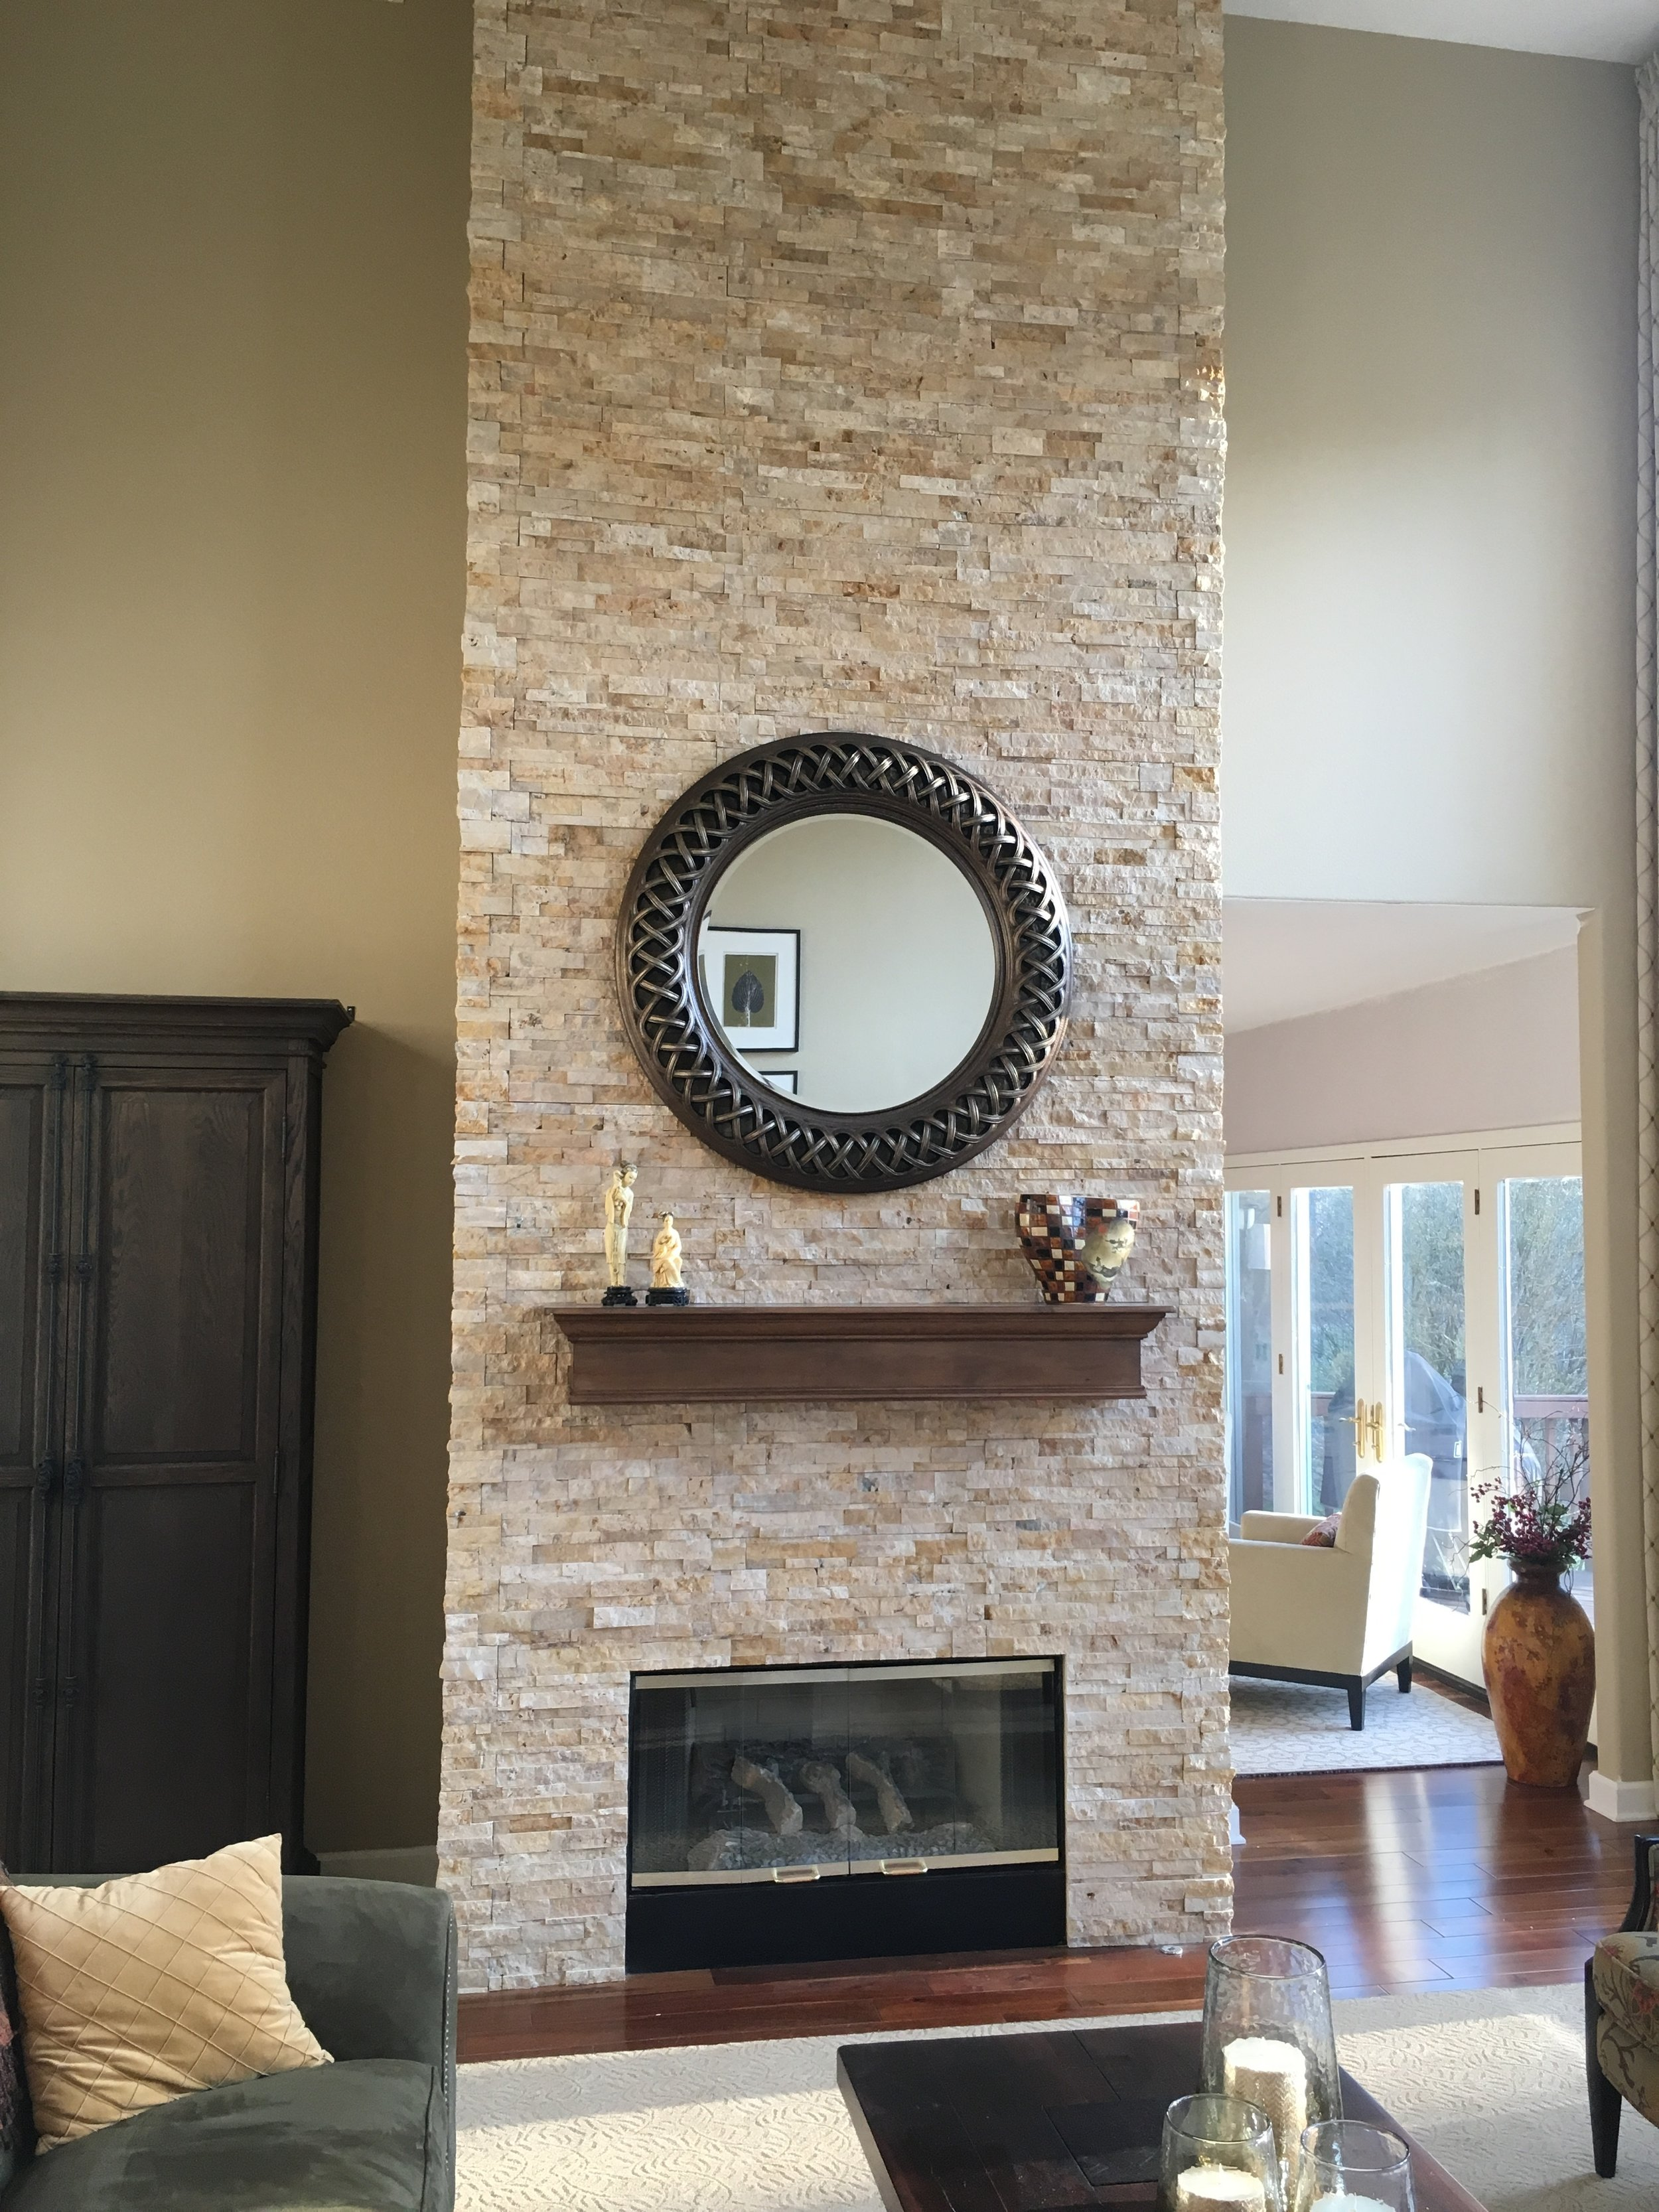 AFTER-a blank wall becomes a showpiece with an overlay of custom stone work